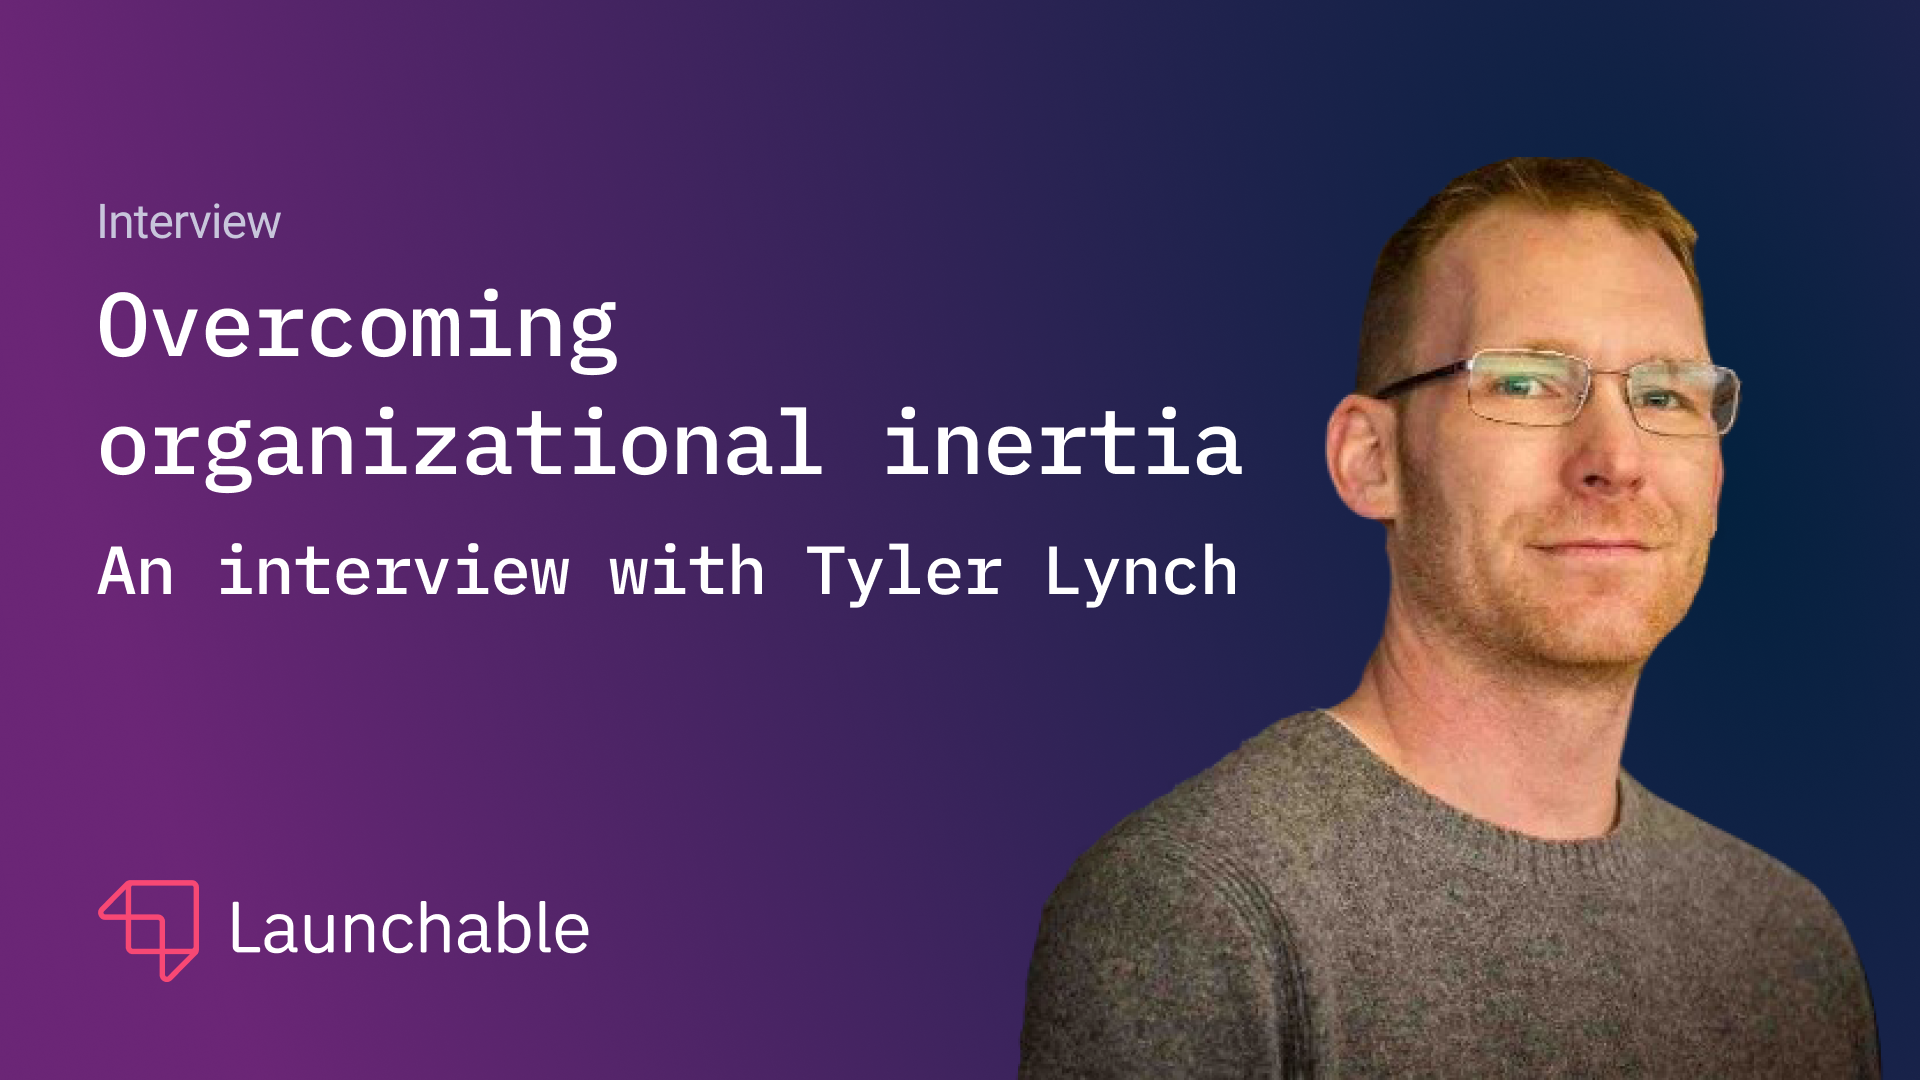 Overcoming organizational inertia: an interview with Tyler Lynch